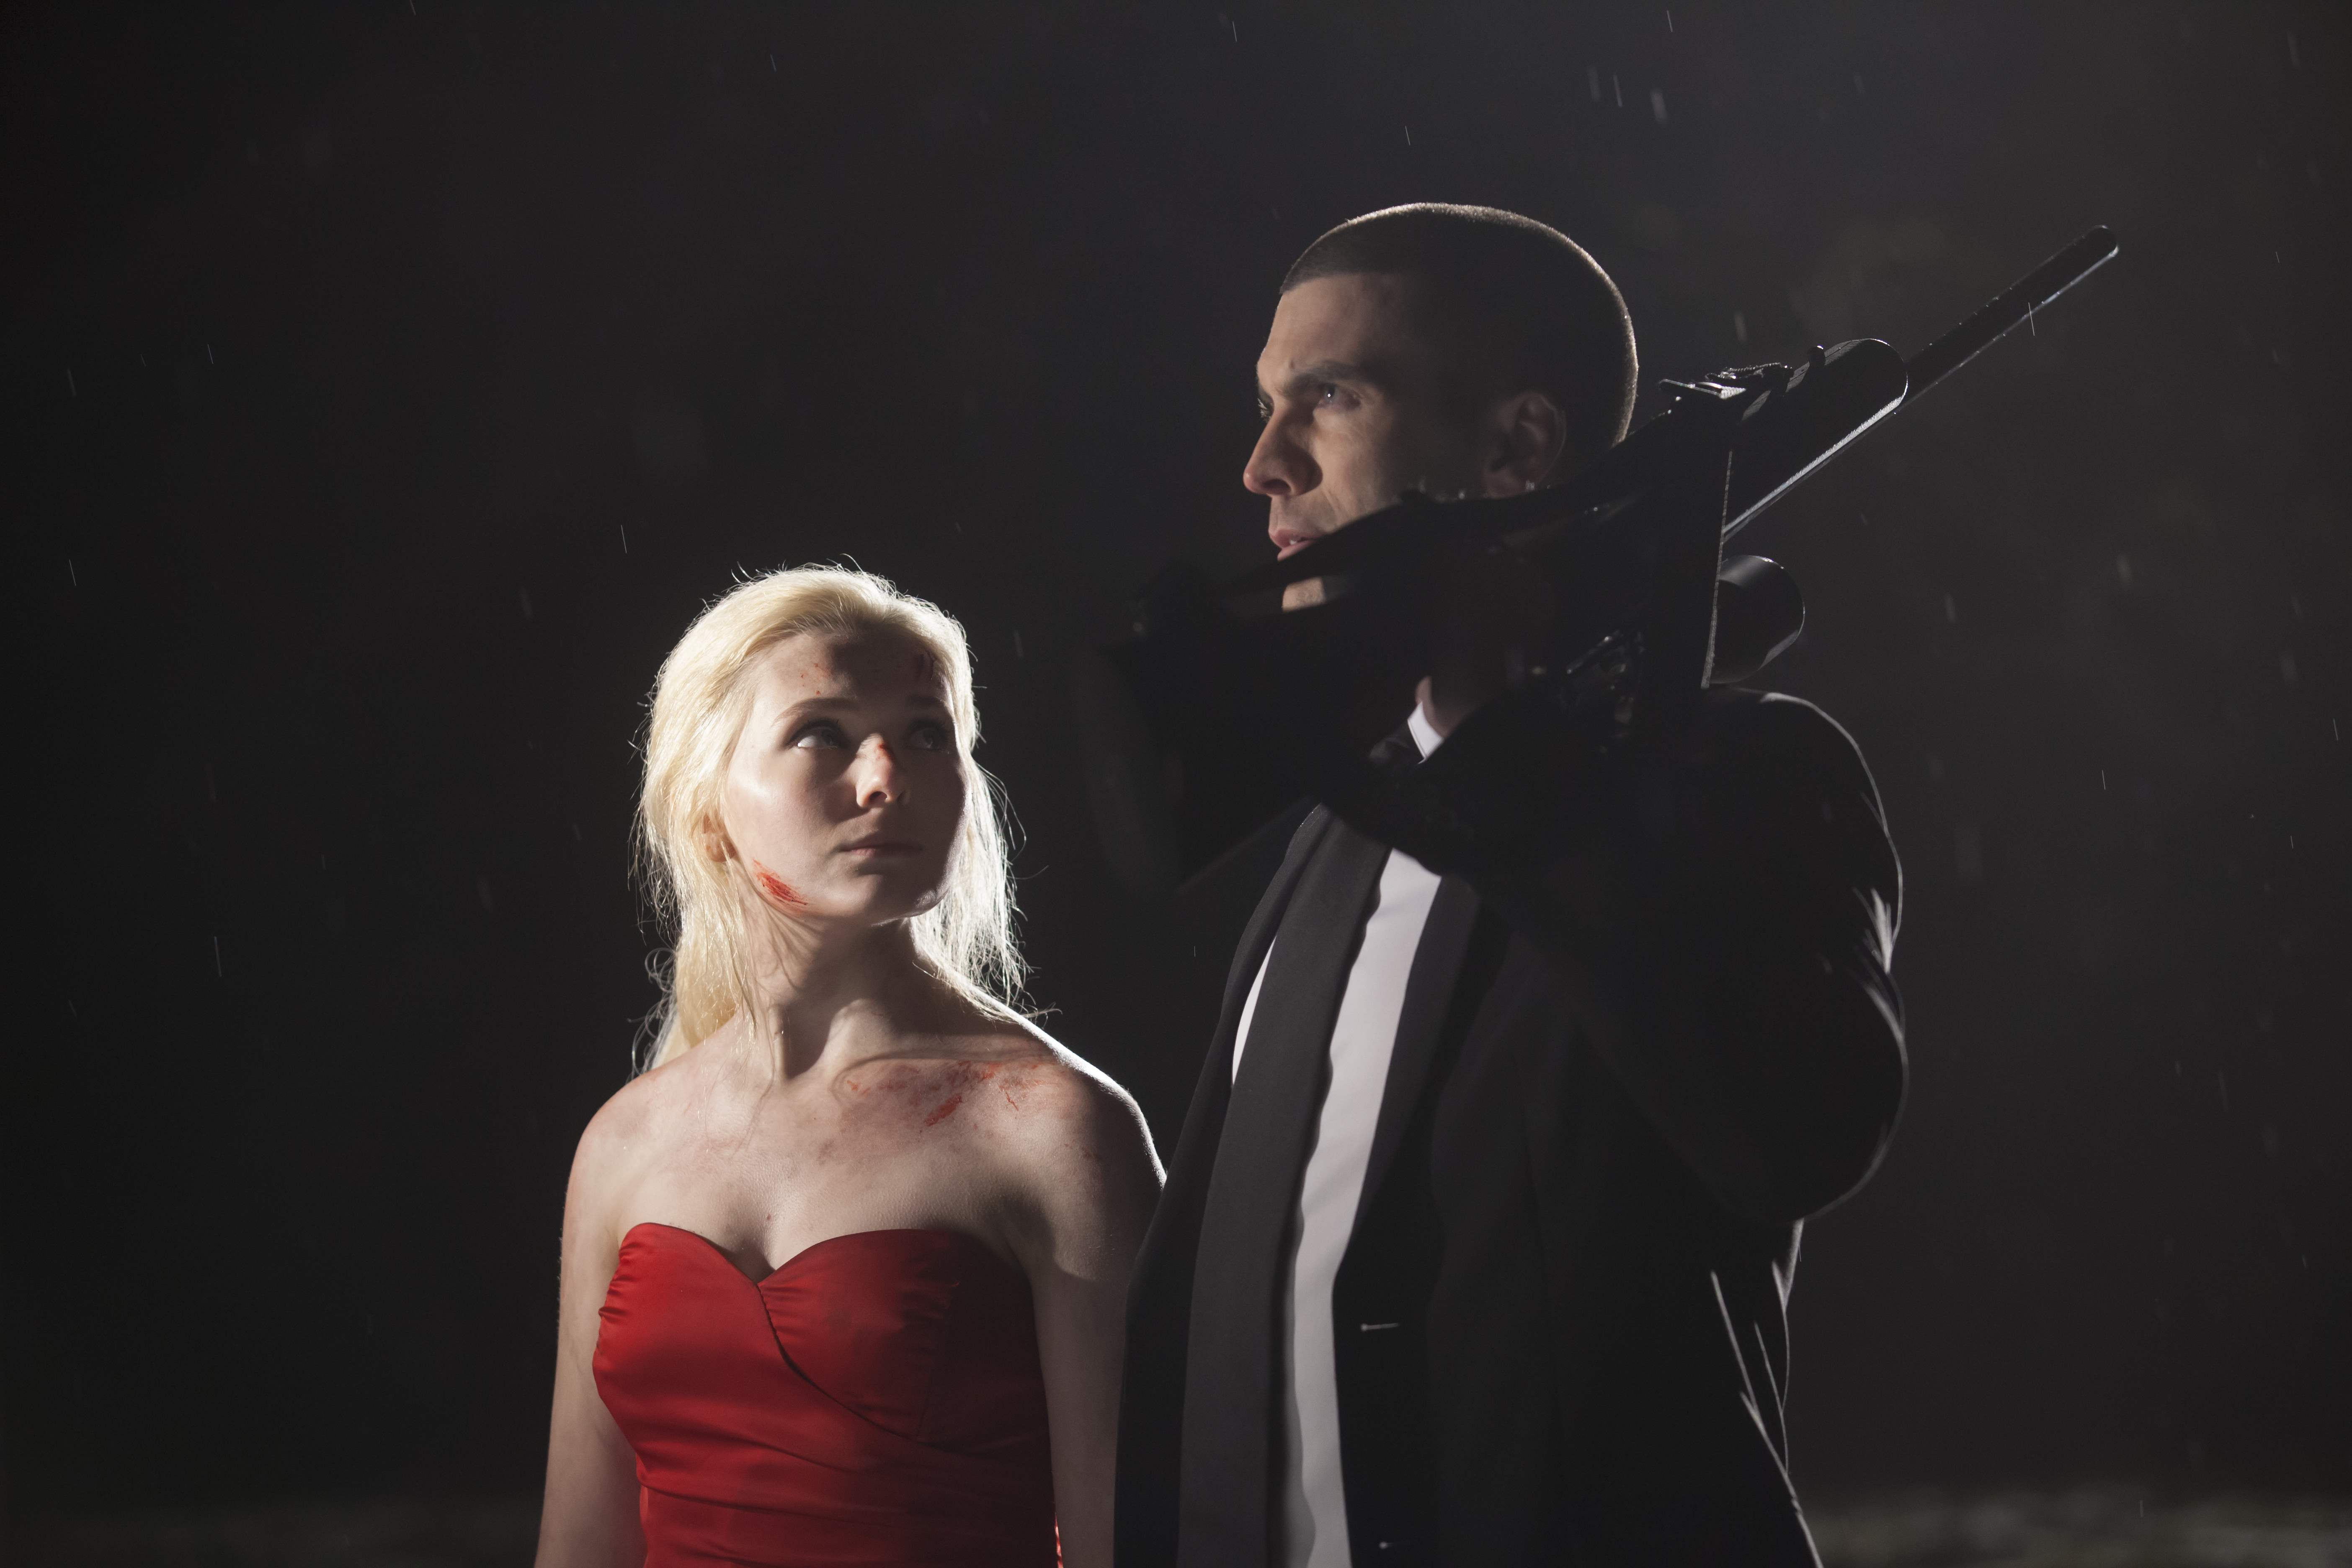 Abigail Breslin and Wes Bentley in Final Girl